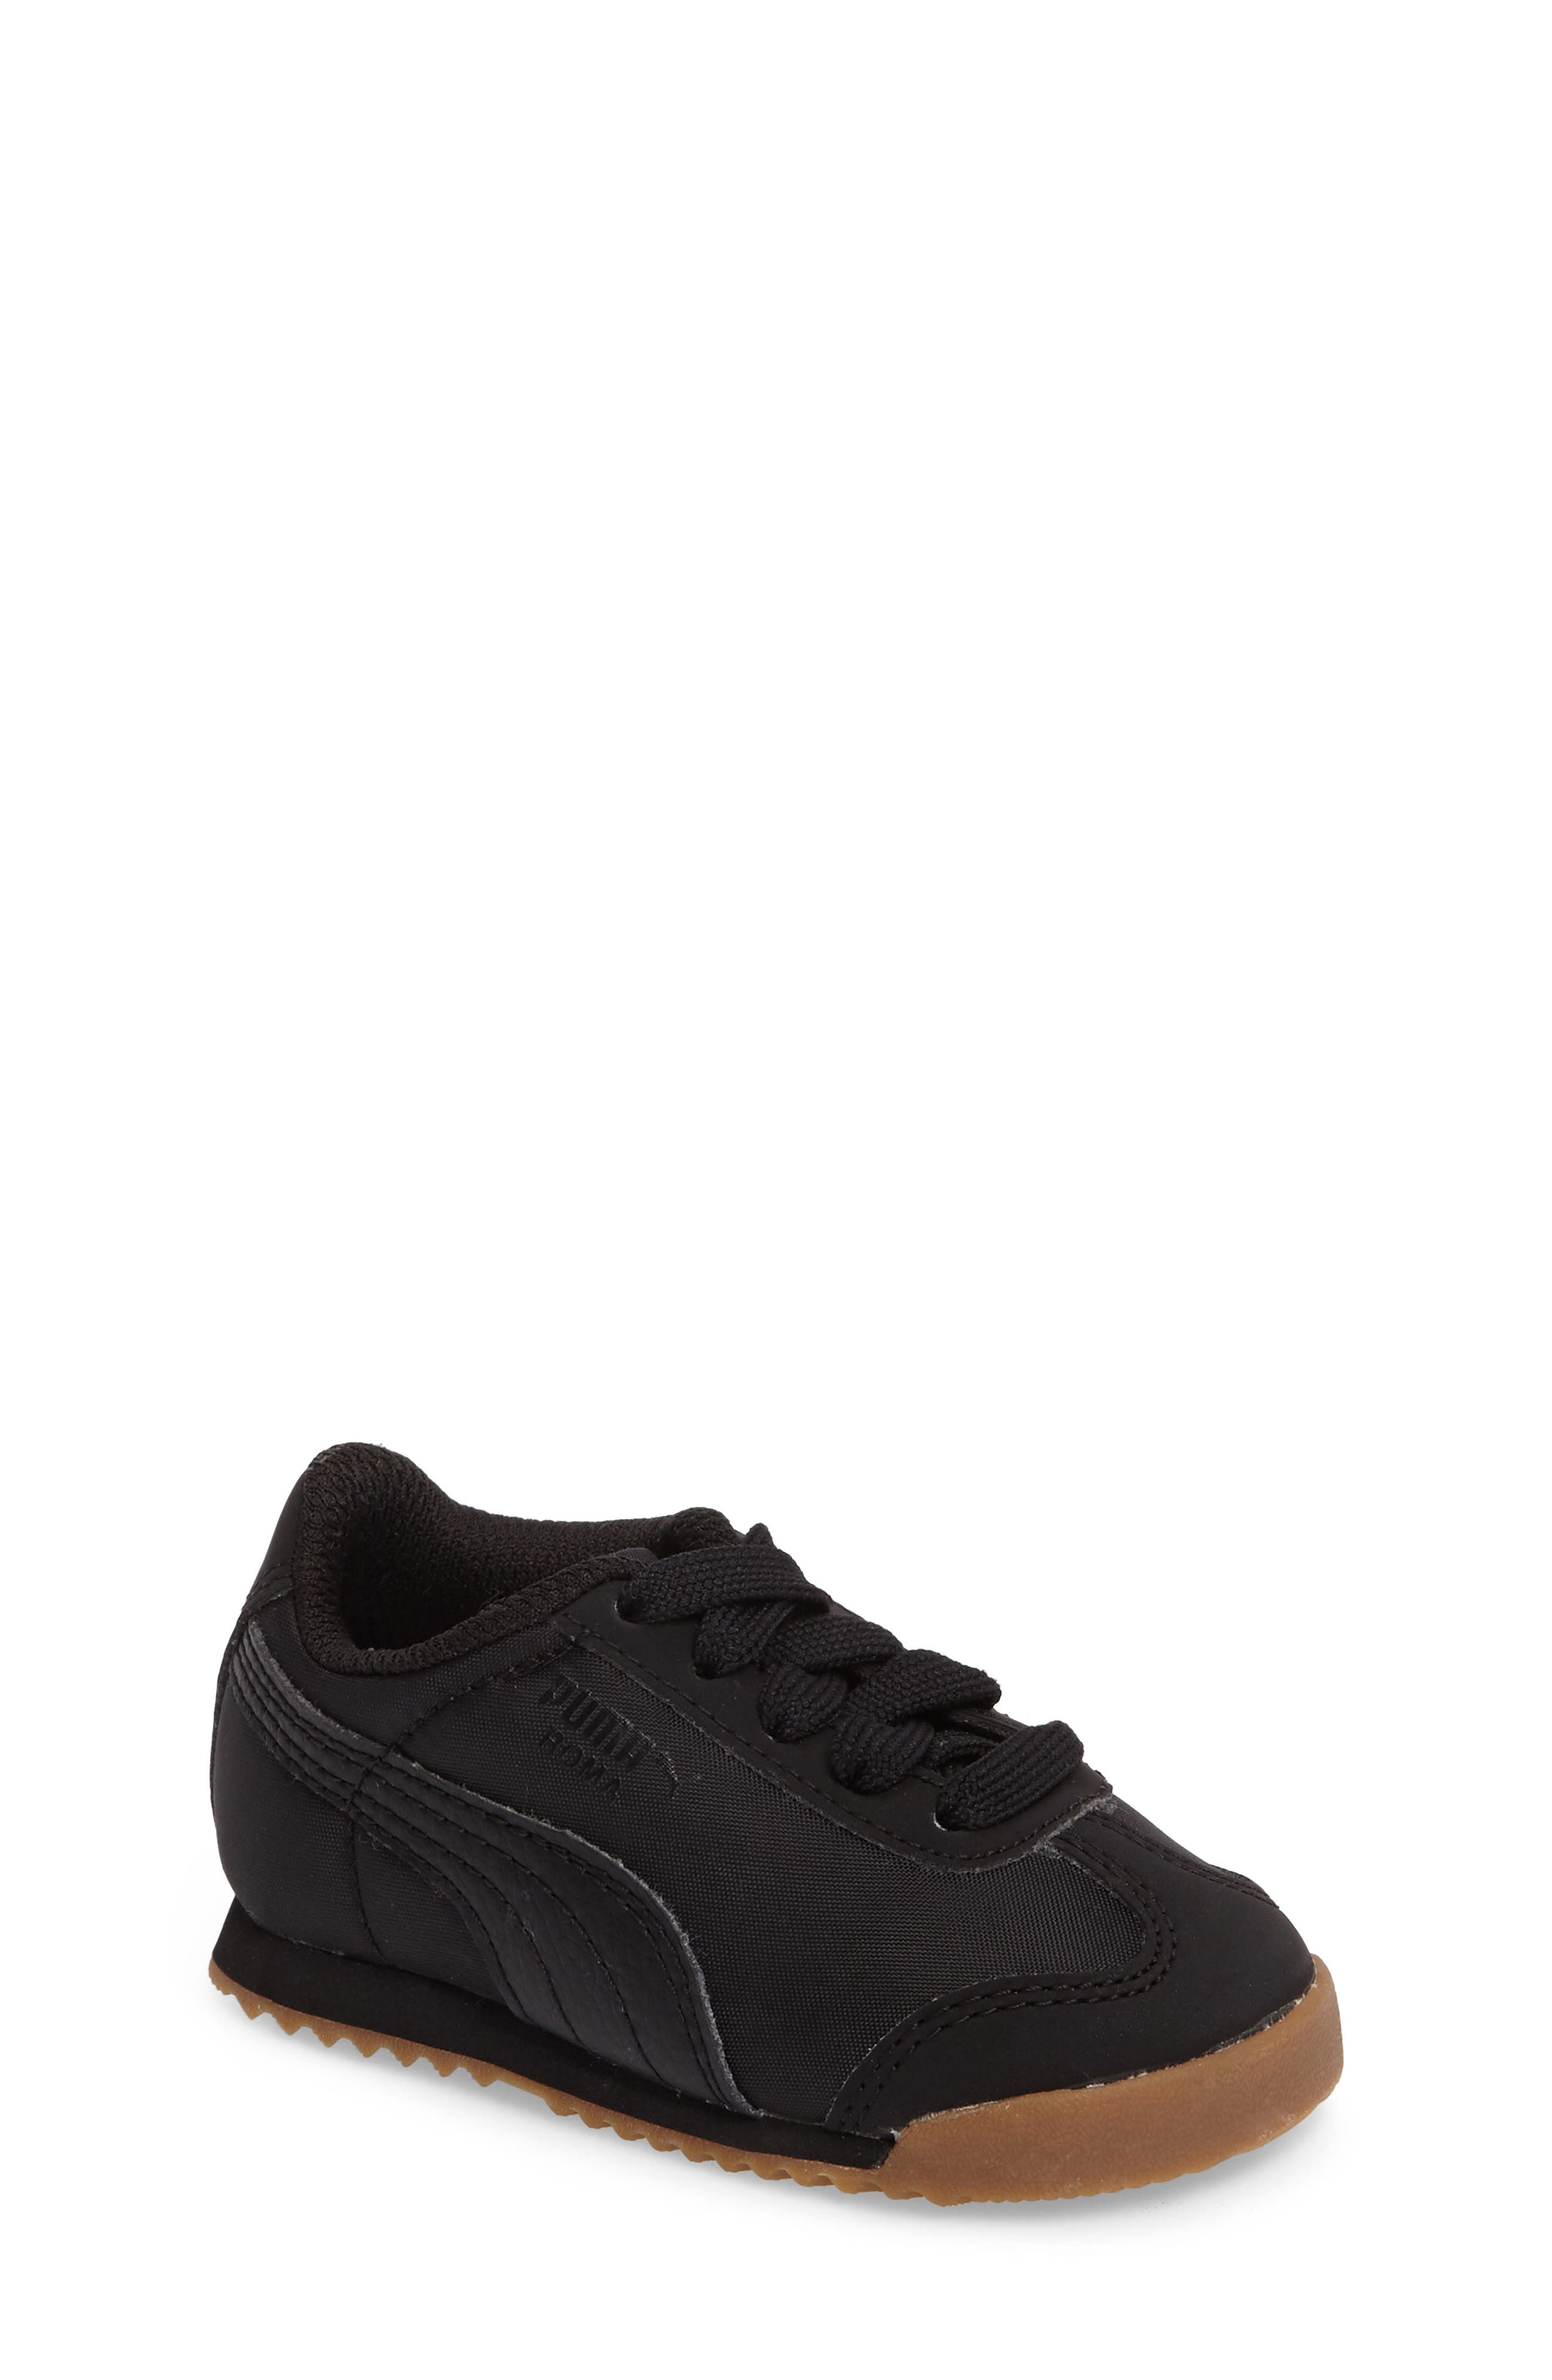 Roma Basic Summer Sneaker,                             Main thumbnail 1, color,